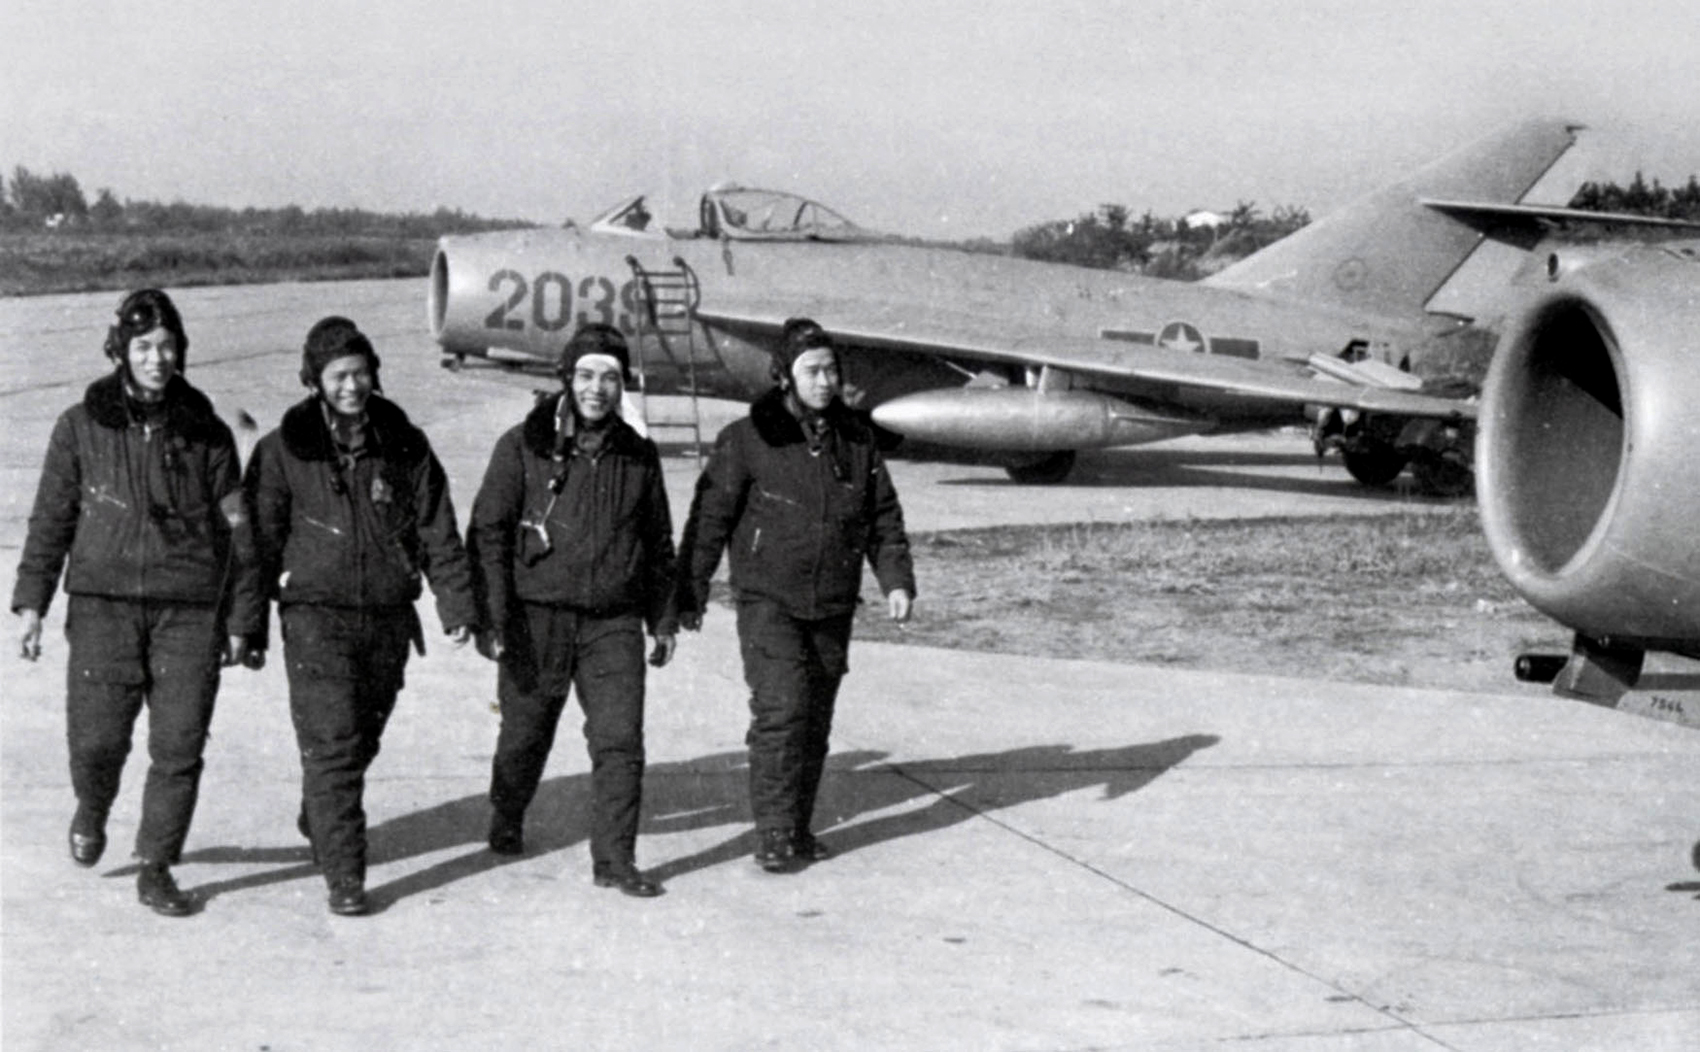 vdr_air_force_mig_17.jpg